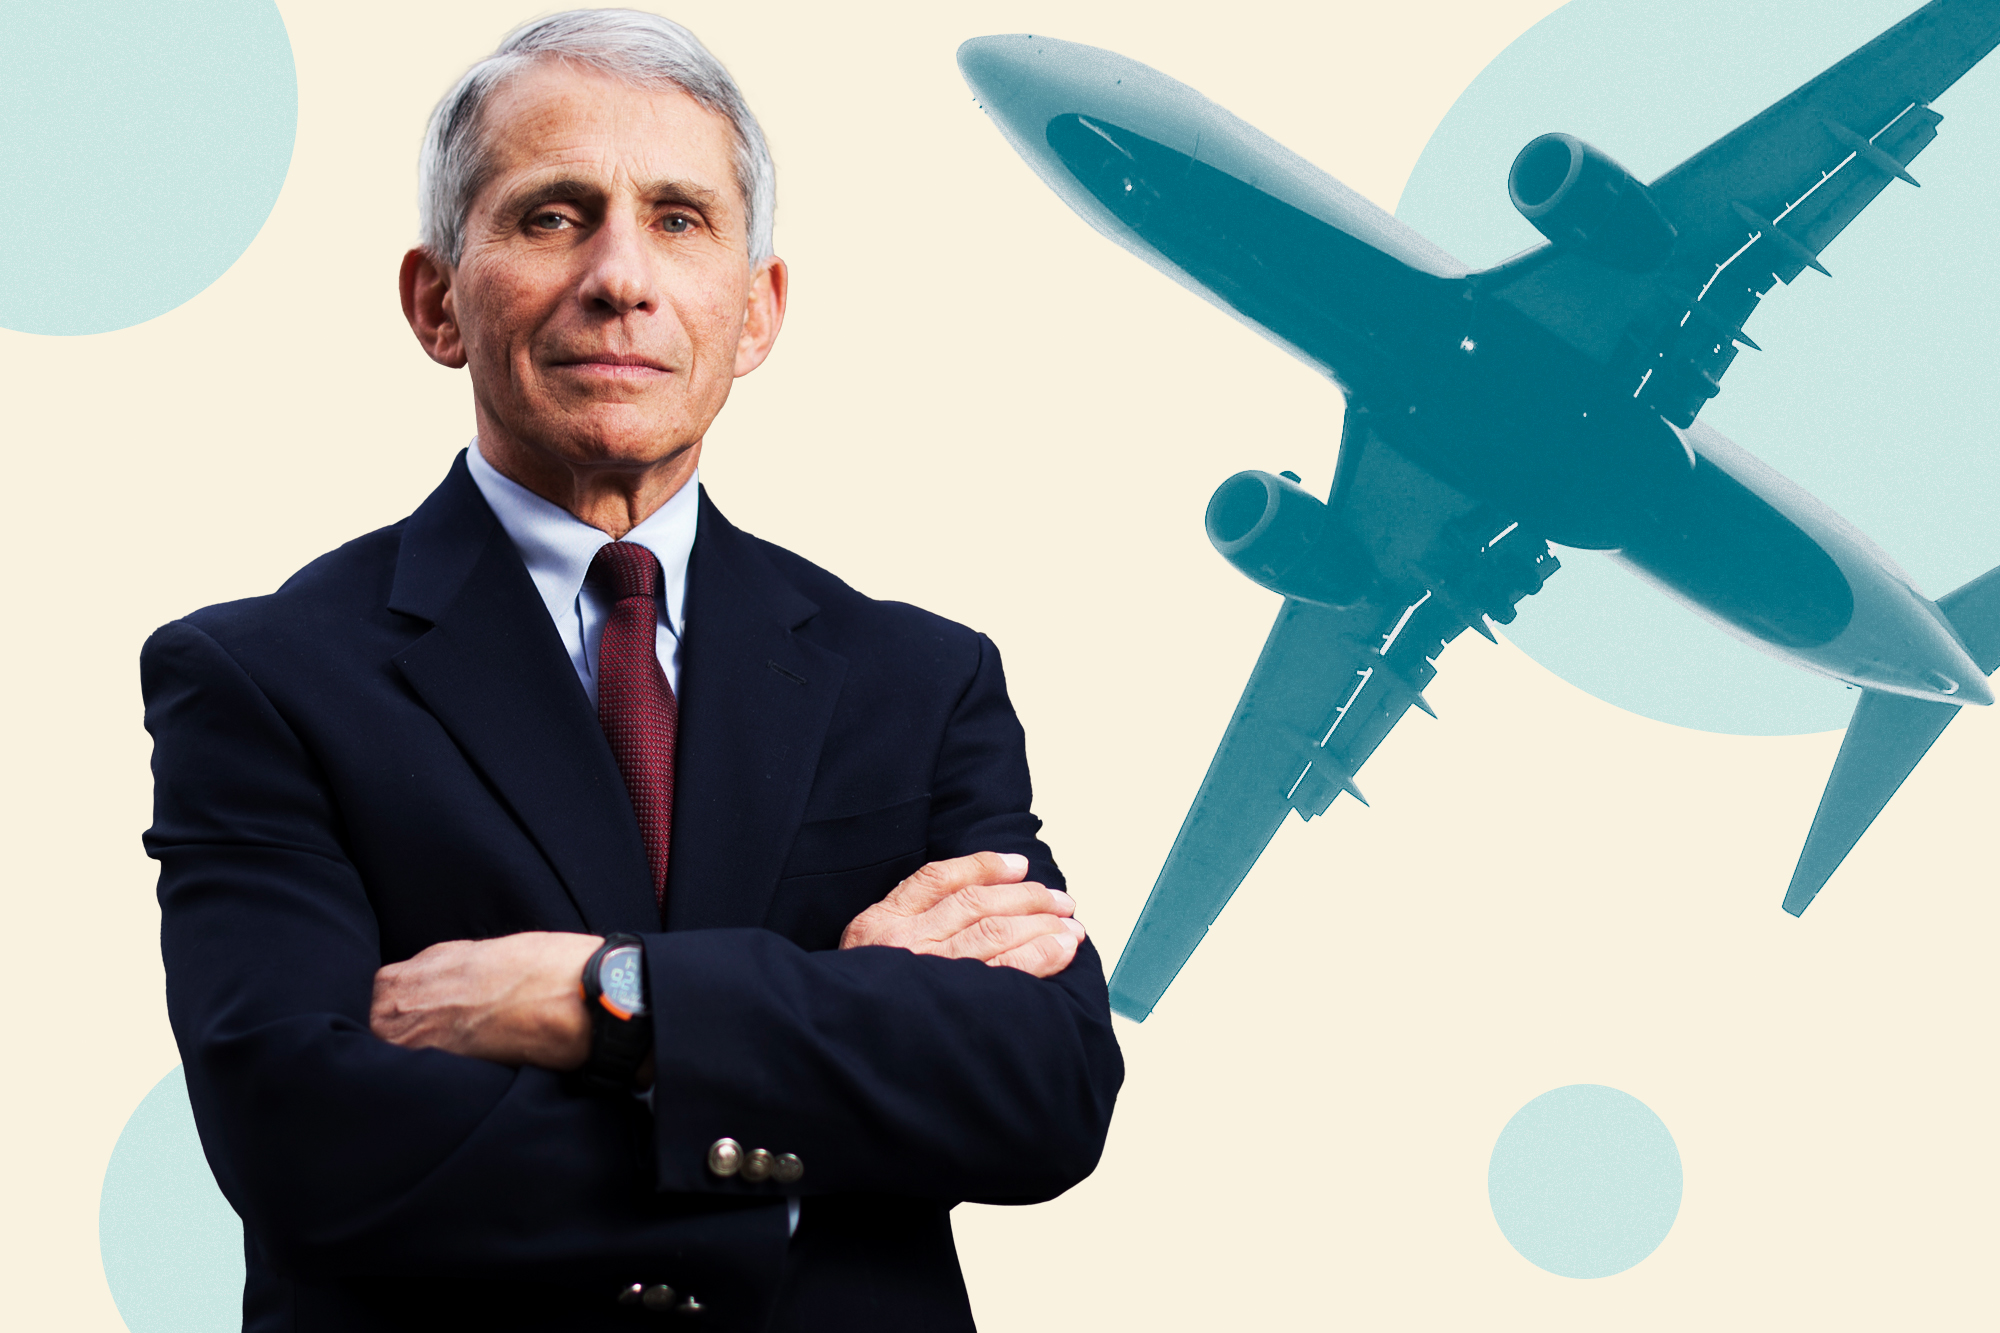 Dr. Fauci on a designed background with an airplane